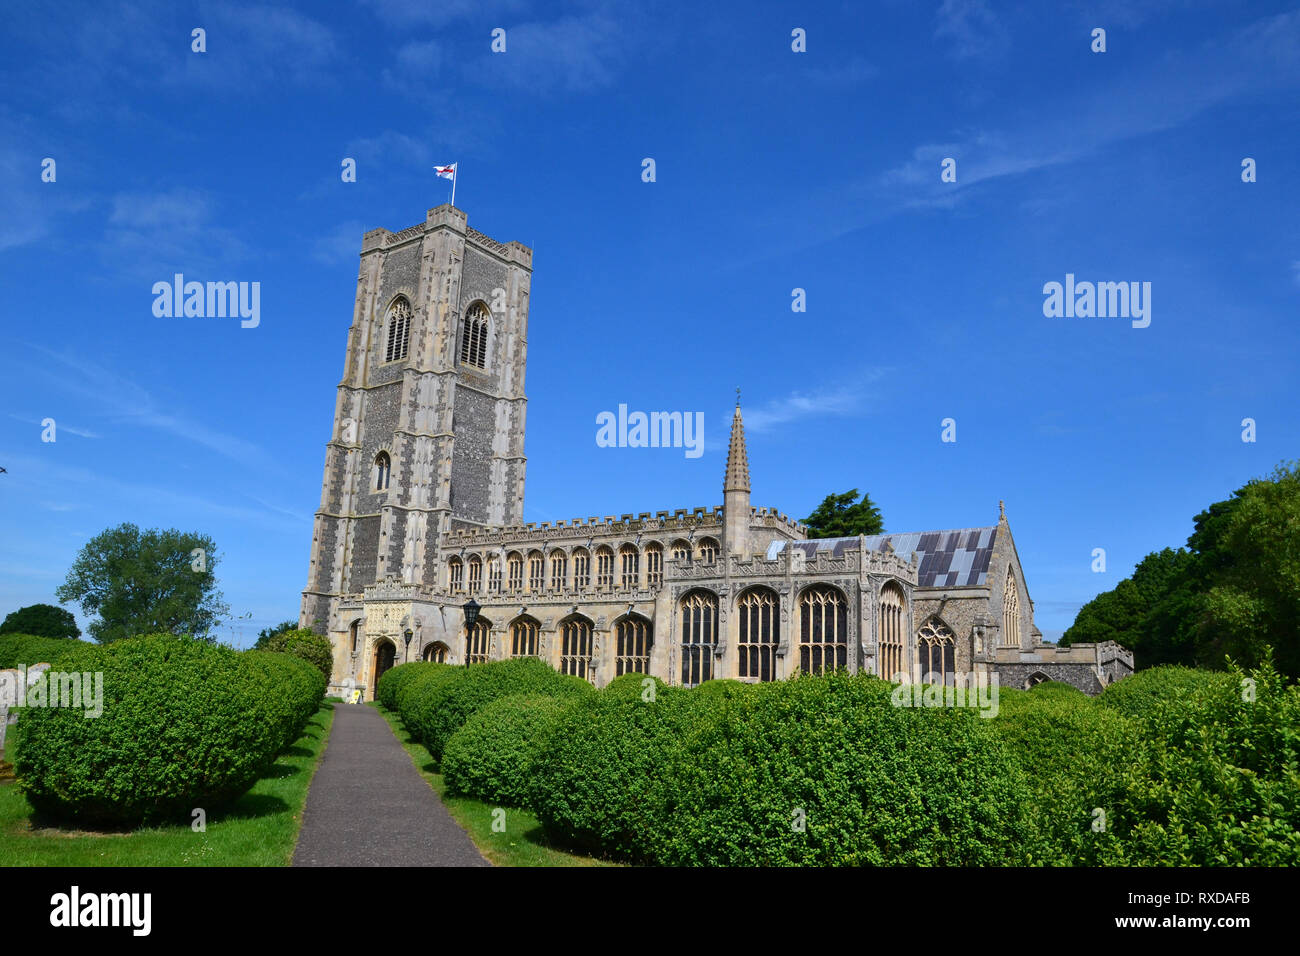 St Peter and St Paul's Church, Parish Church in Lavenham, Suffolk, UK. Sunny day. - Stock Image